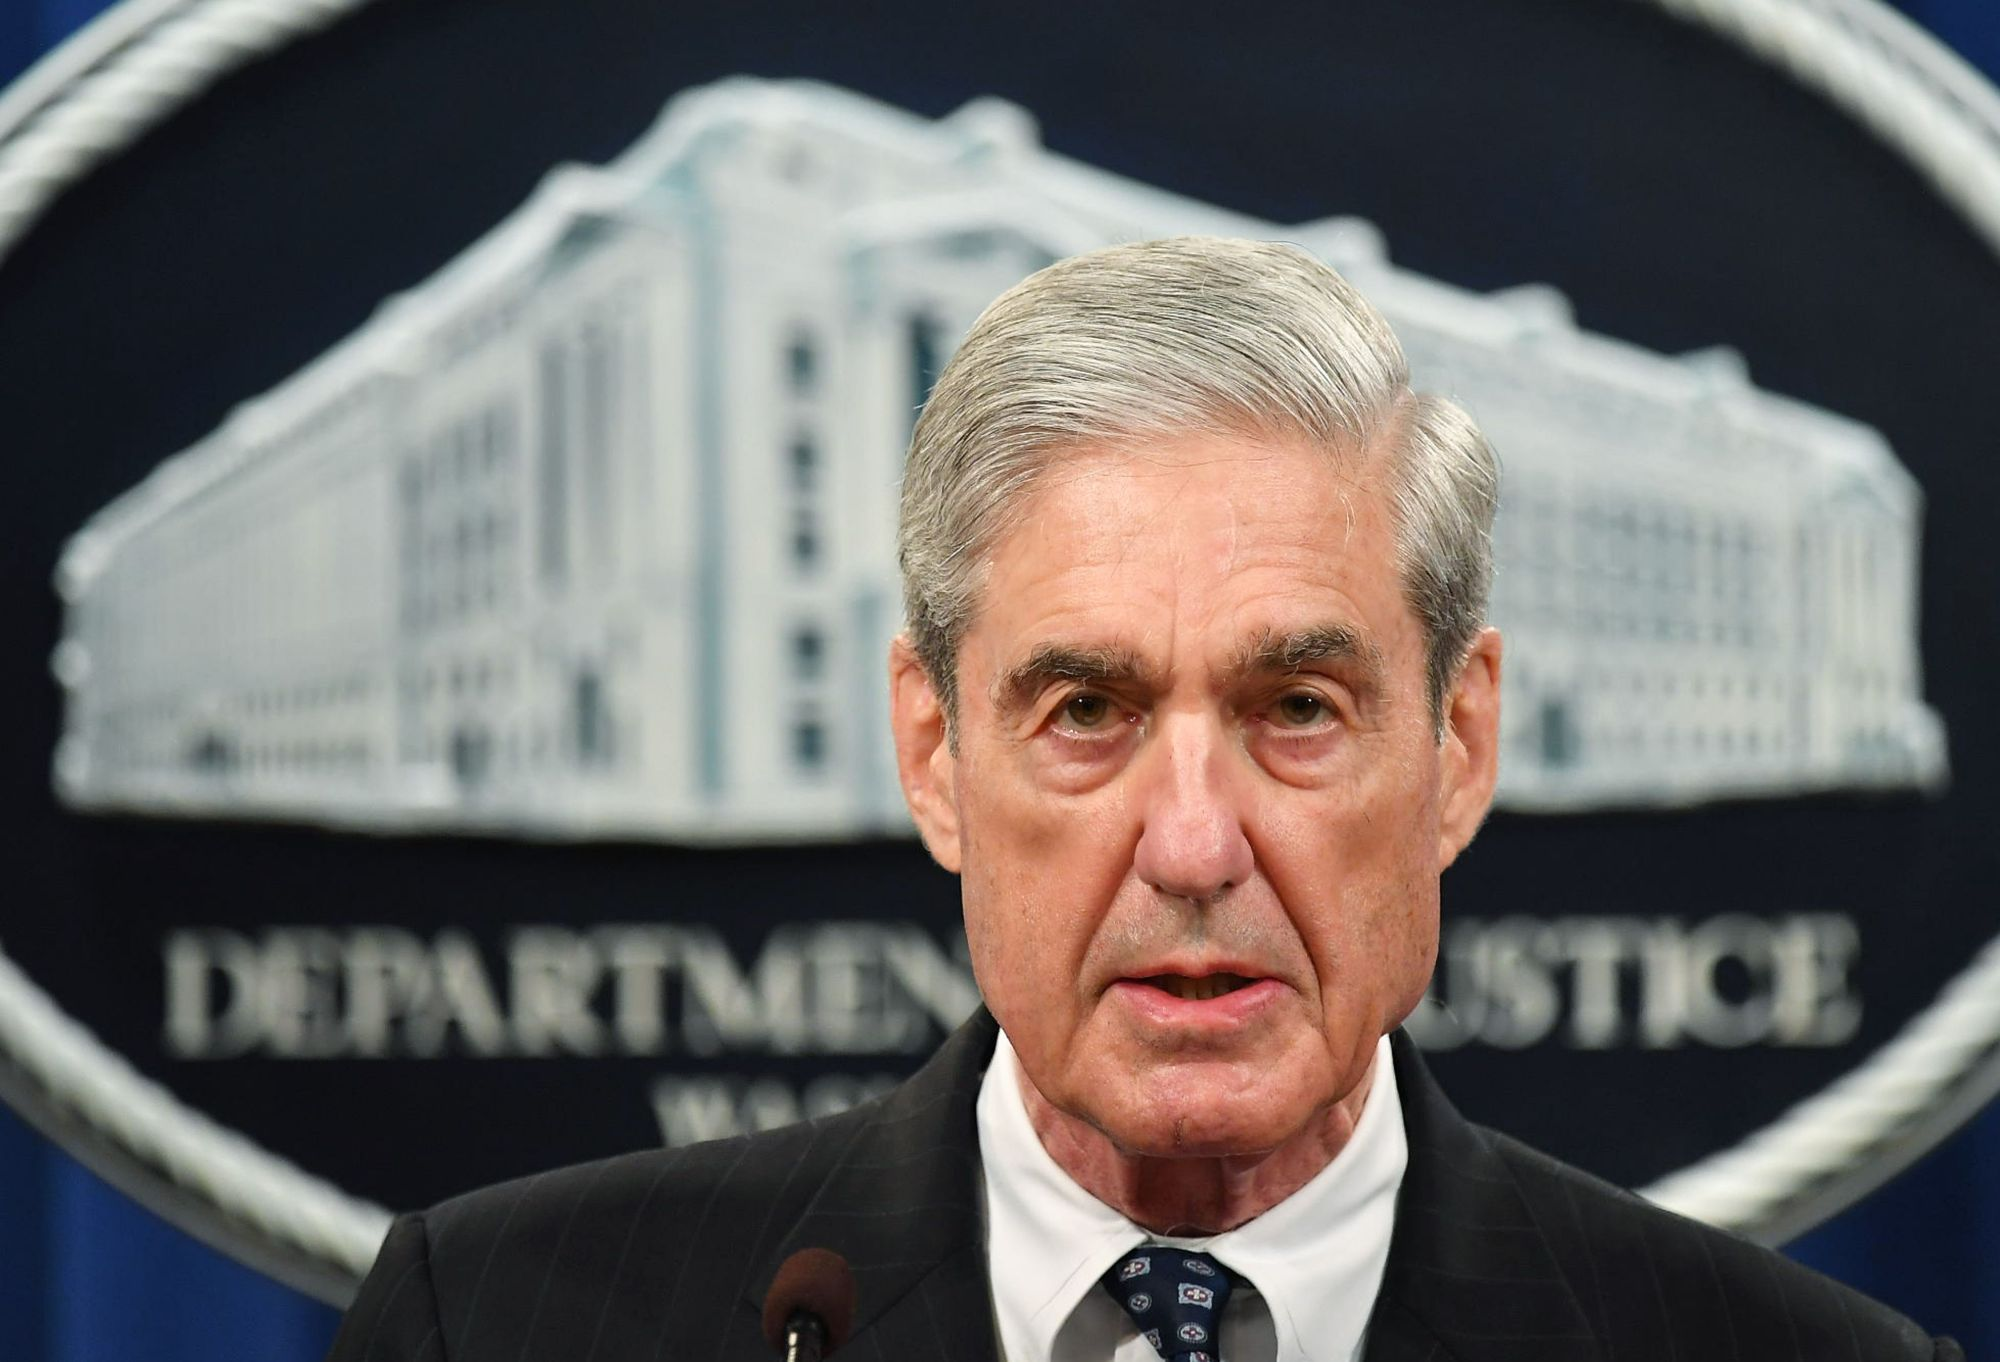 Special counsel Robert Mueller speaks on the investigation into Russian interference in the 2016 presidential election, at the U.S. Justice Department in Washington in May. Mueller will submit to questions for the first time Wednesday on his explosive report detailing numerous links between President Donald Trump's 2016 campaign and Russian election meddling, and Trump's efforts to obstruct his investigation. | AFP-JIJI